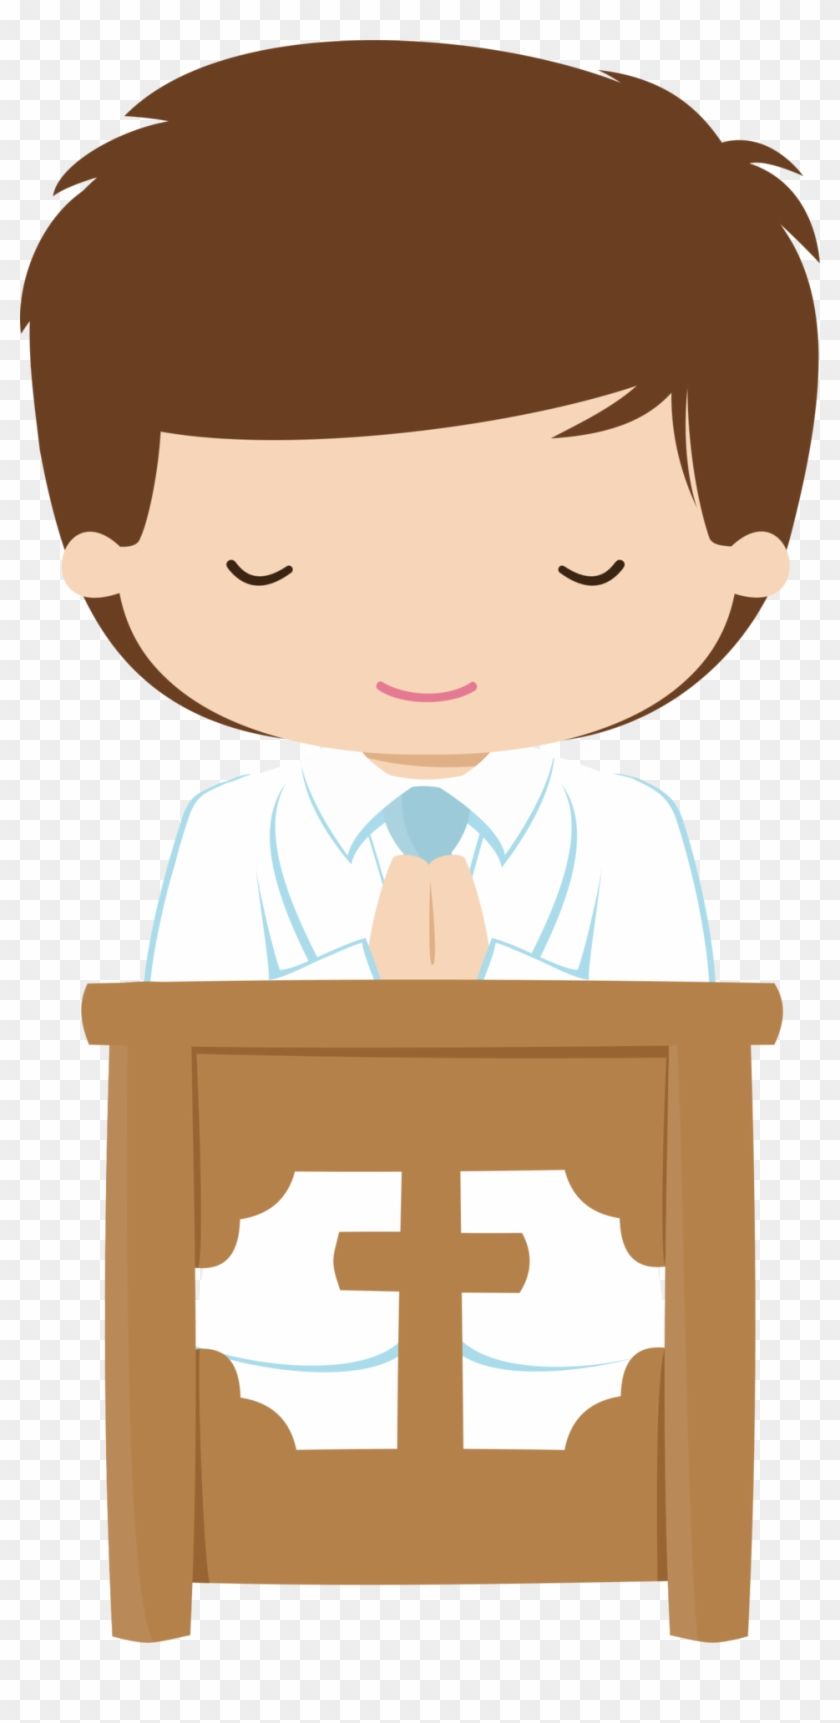 Communion clipart backgrounds free. First boy png